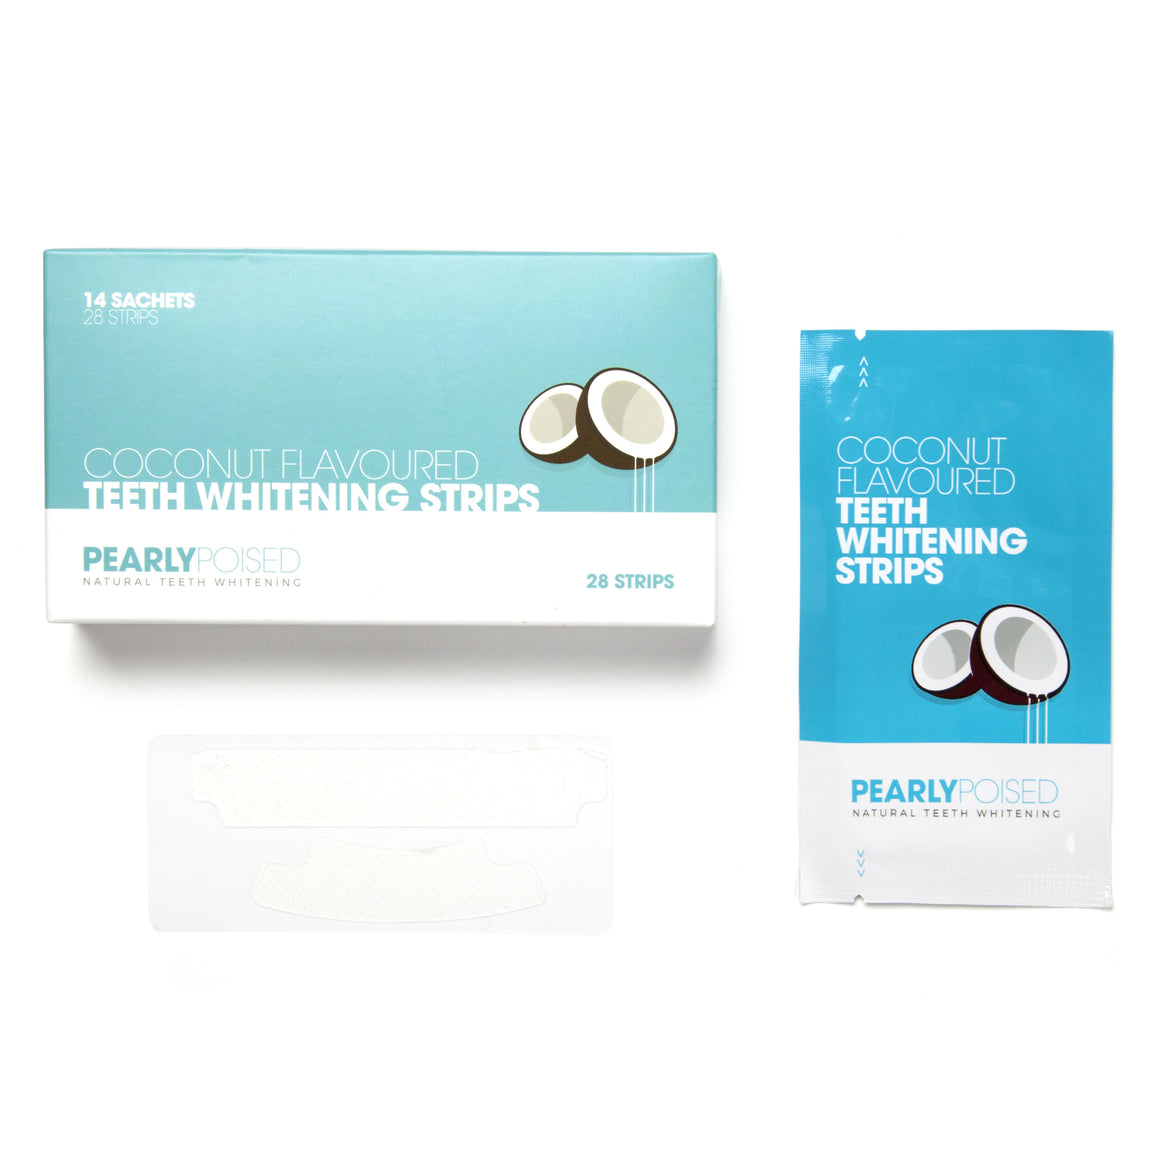 1 Pack of Teeth Whitening Strips - Coconut Flavoured